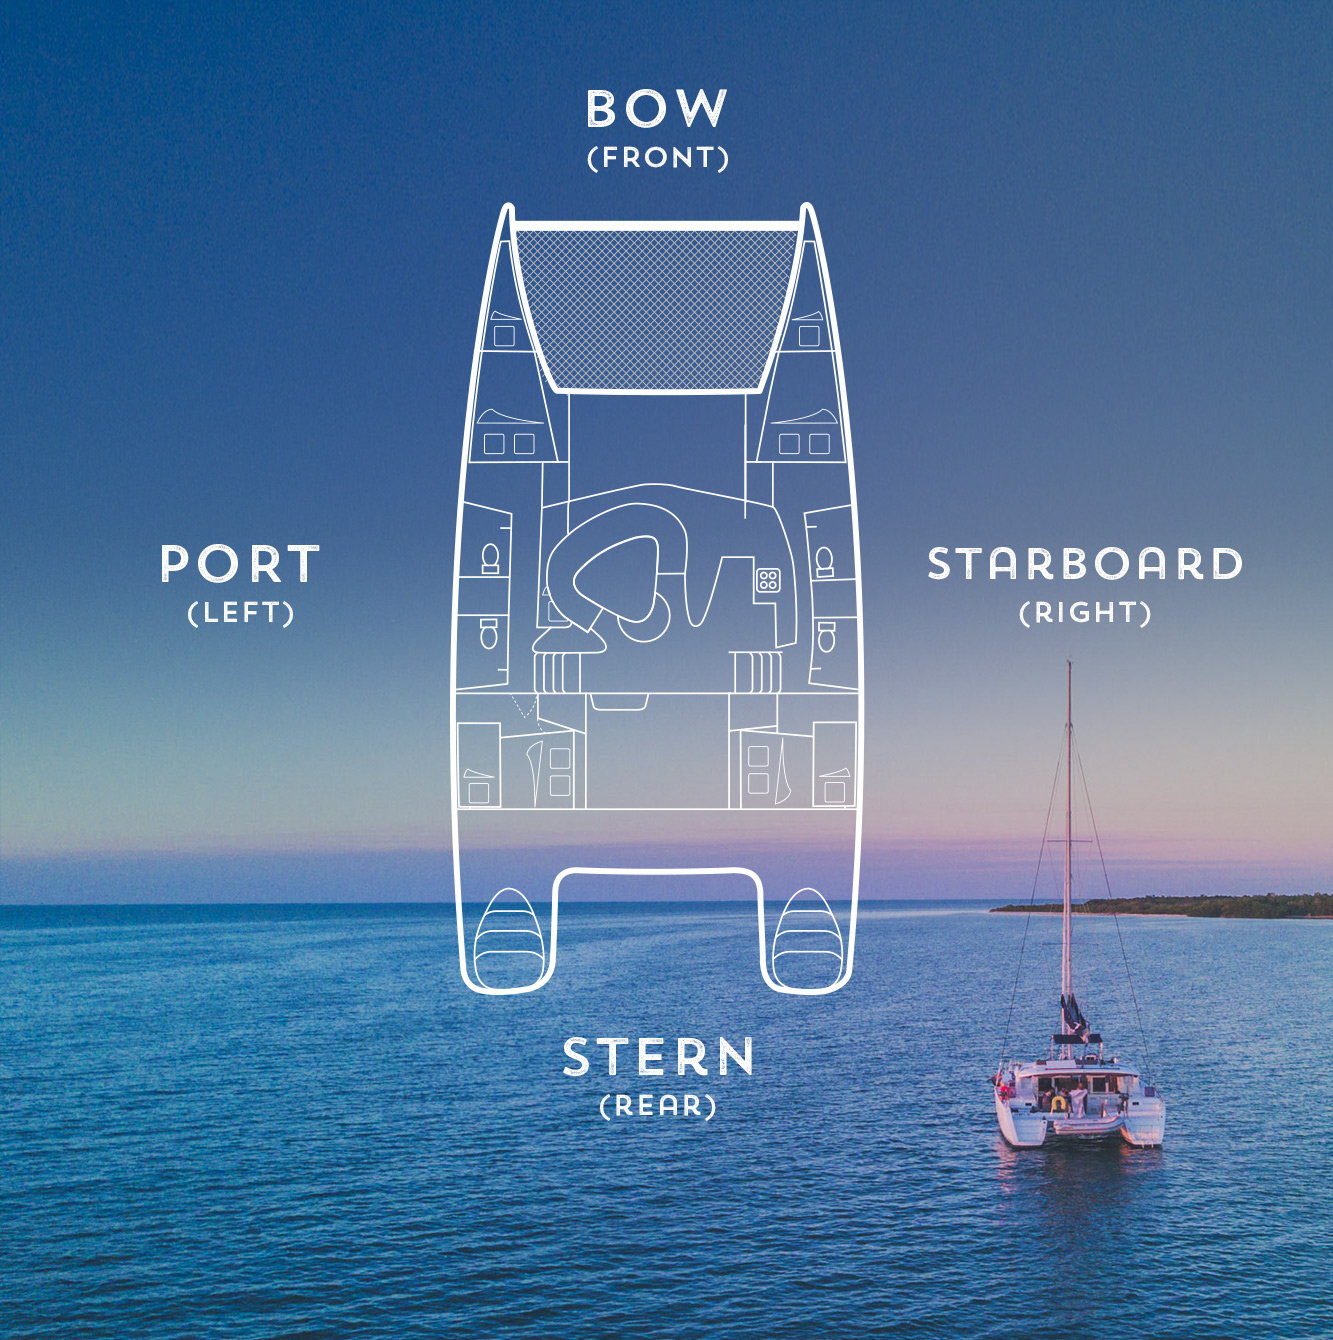 Essential boat terminology